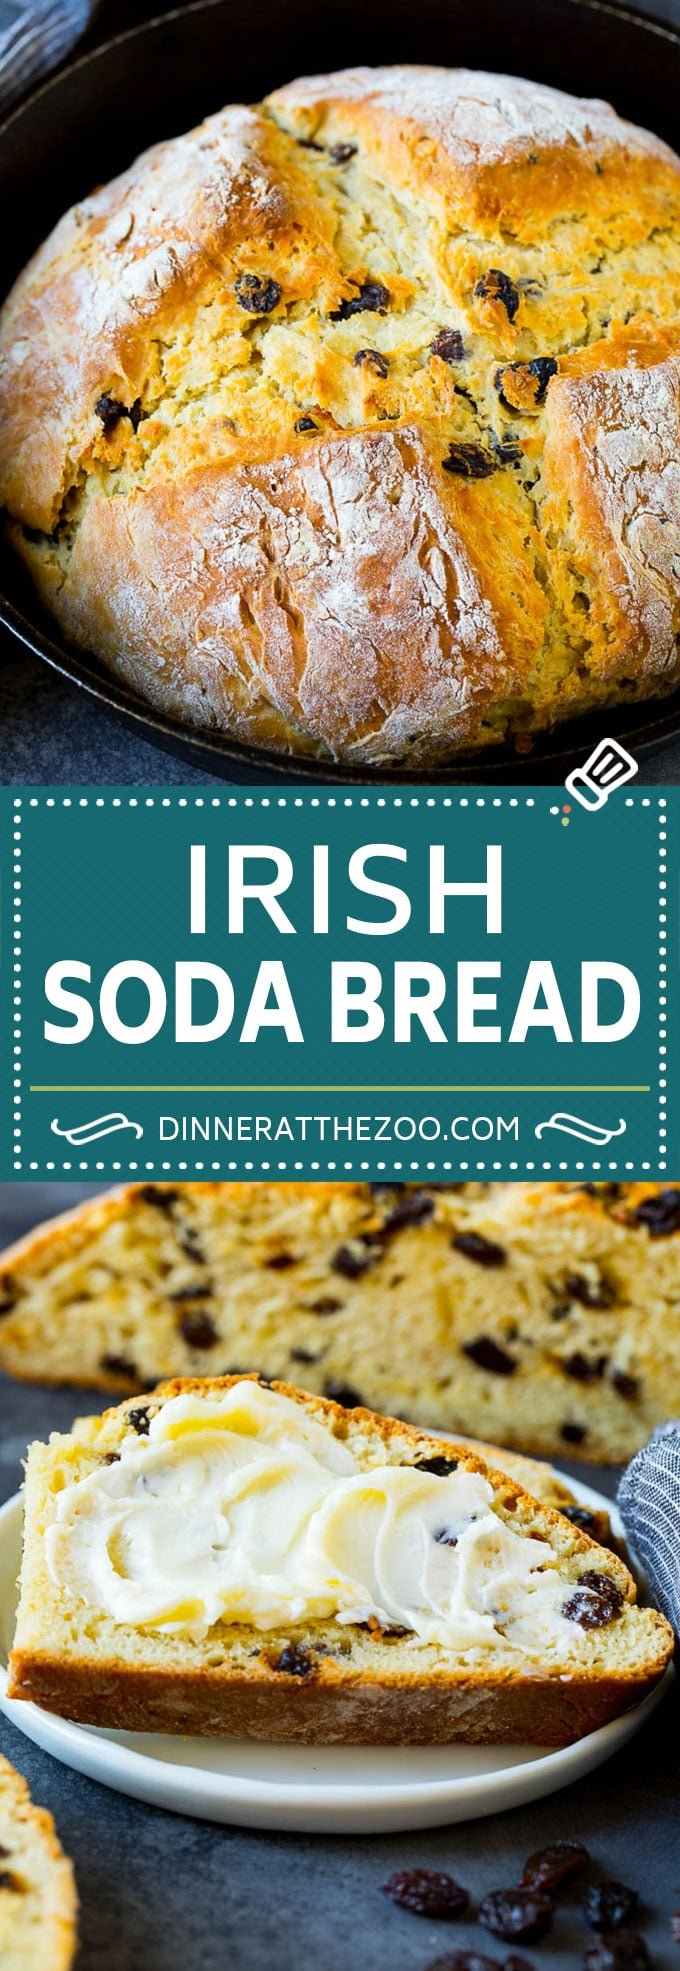 Irish Soda Bread Recipe #bread #baking #stpatricksday #sidedish #dinneratthezoo